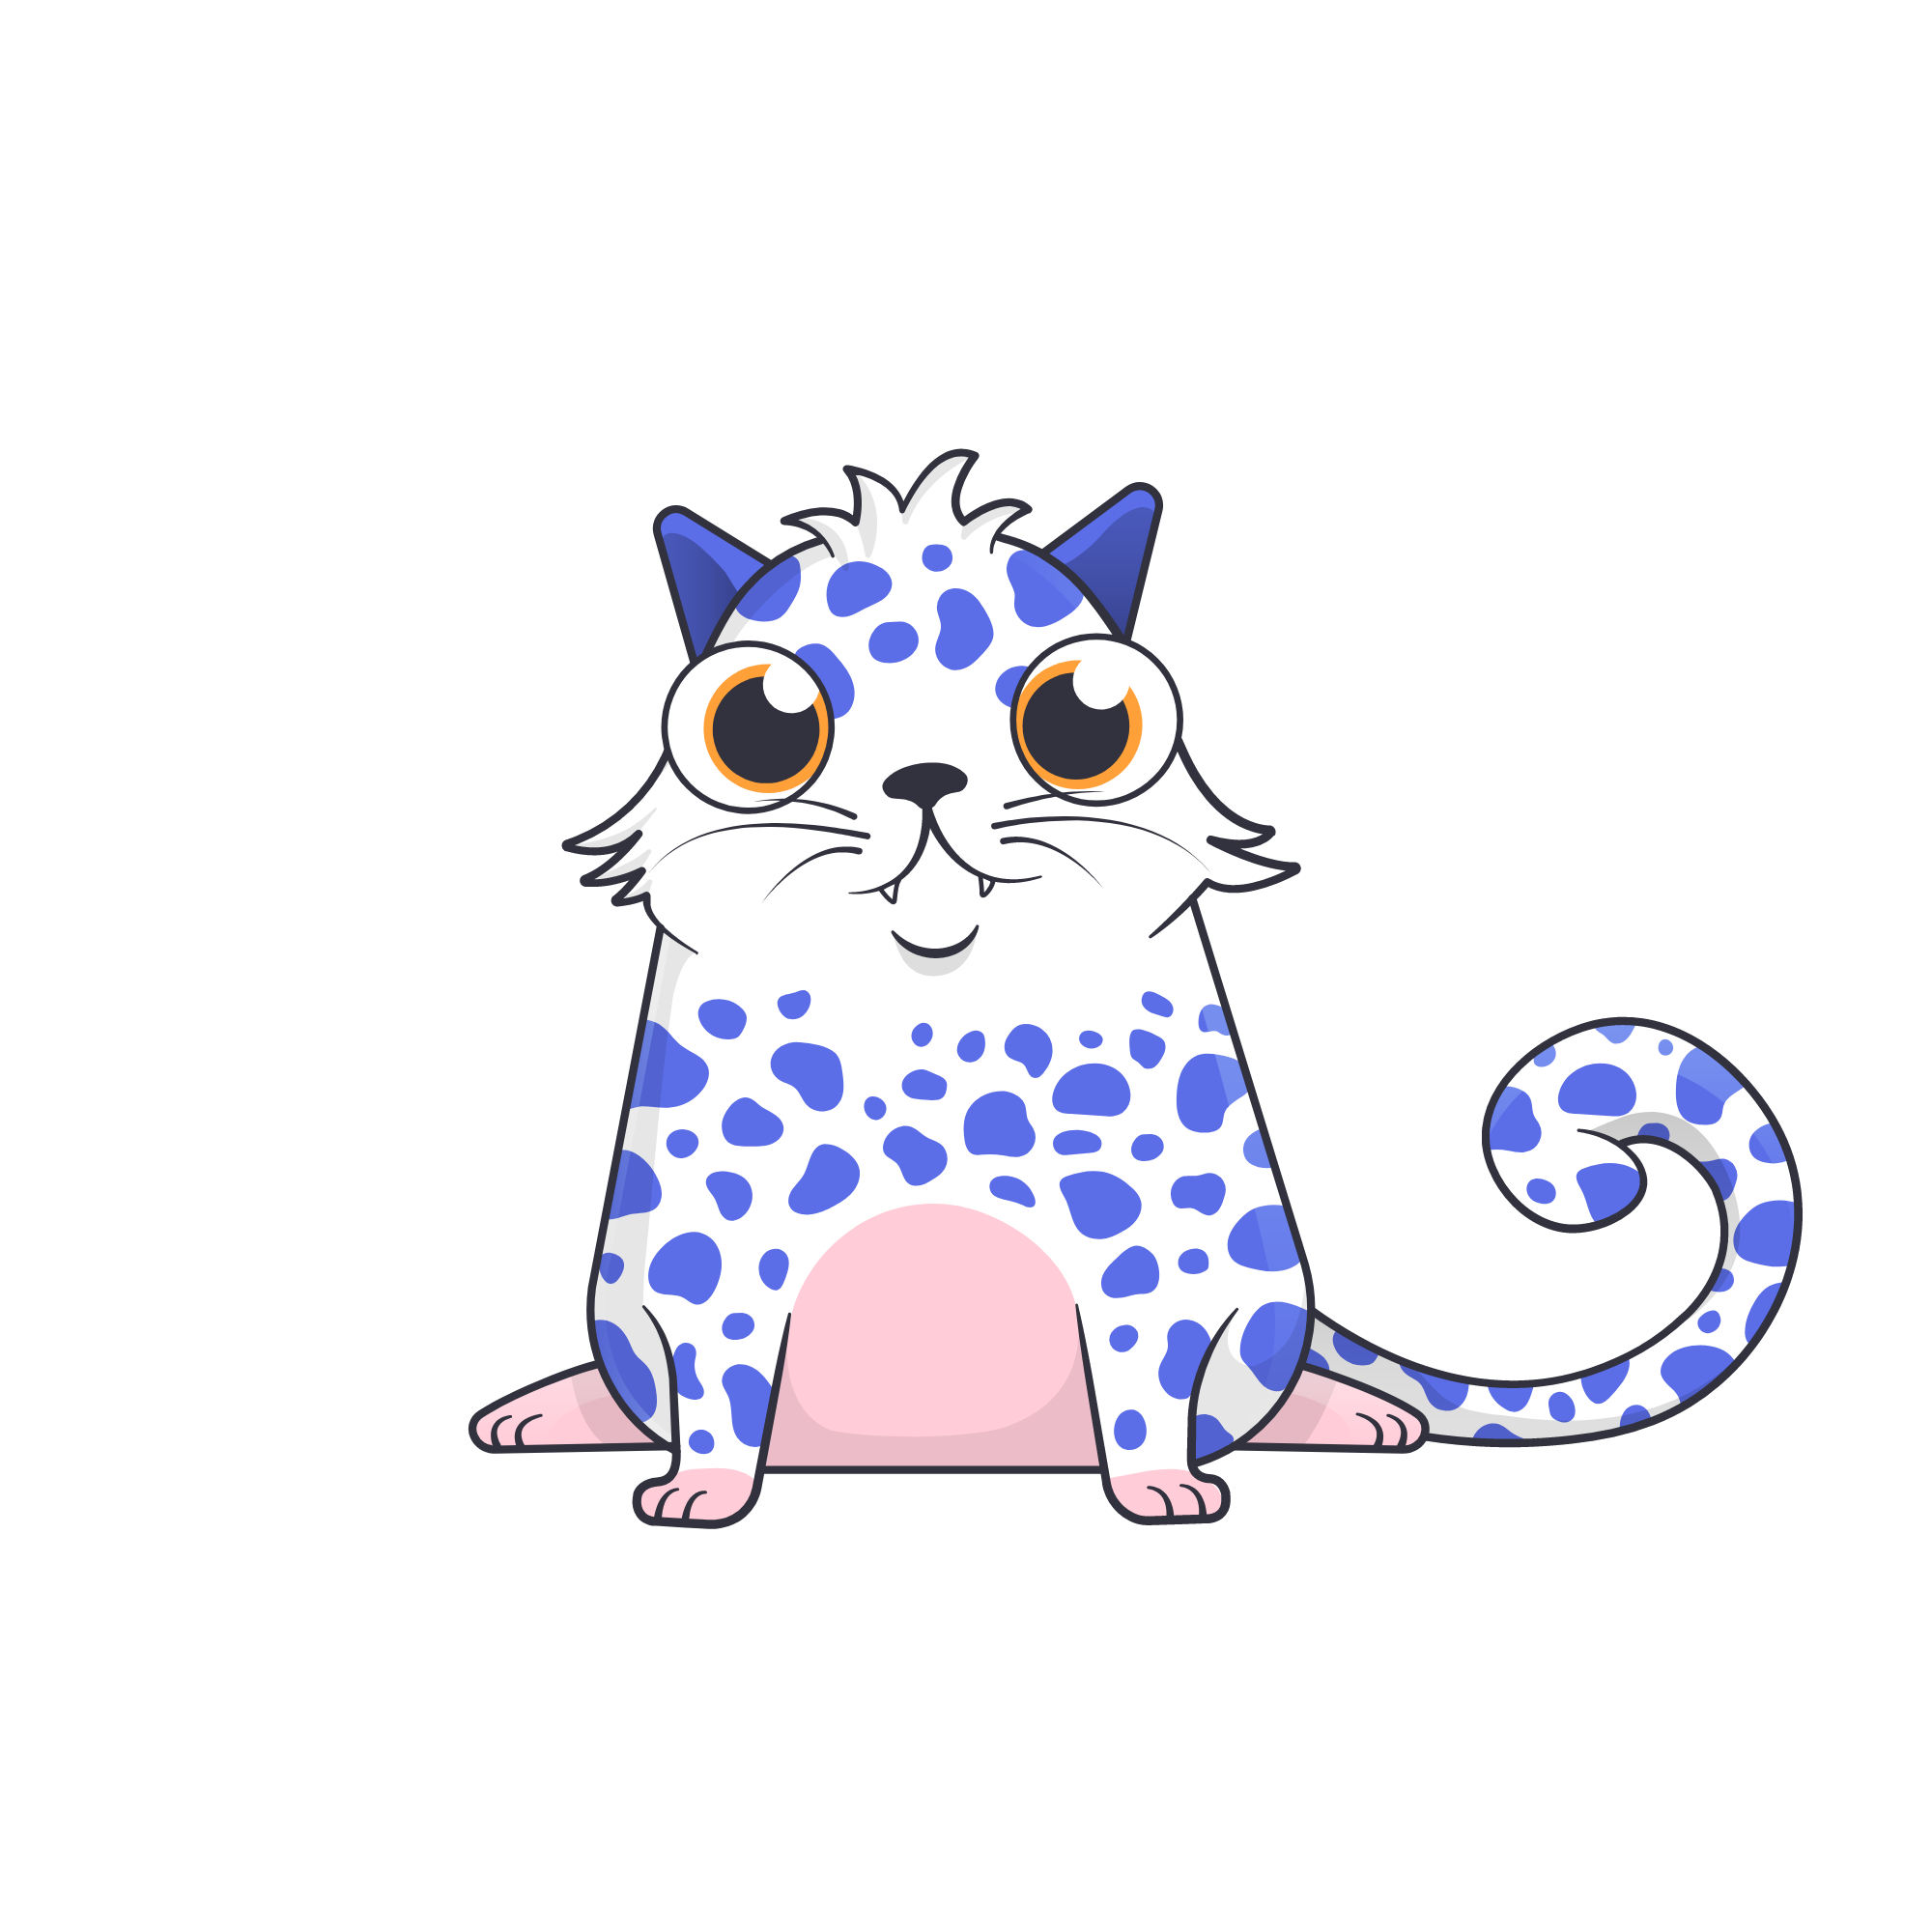 cryptokitty #1193643